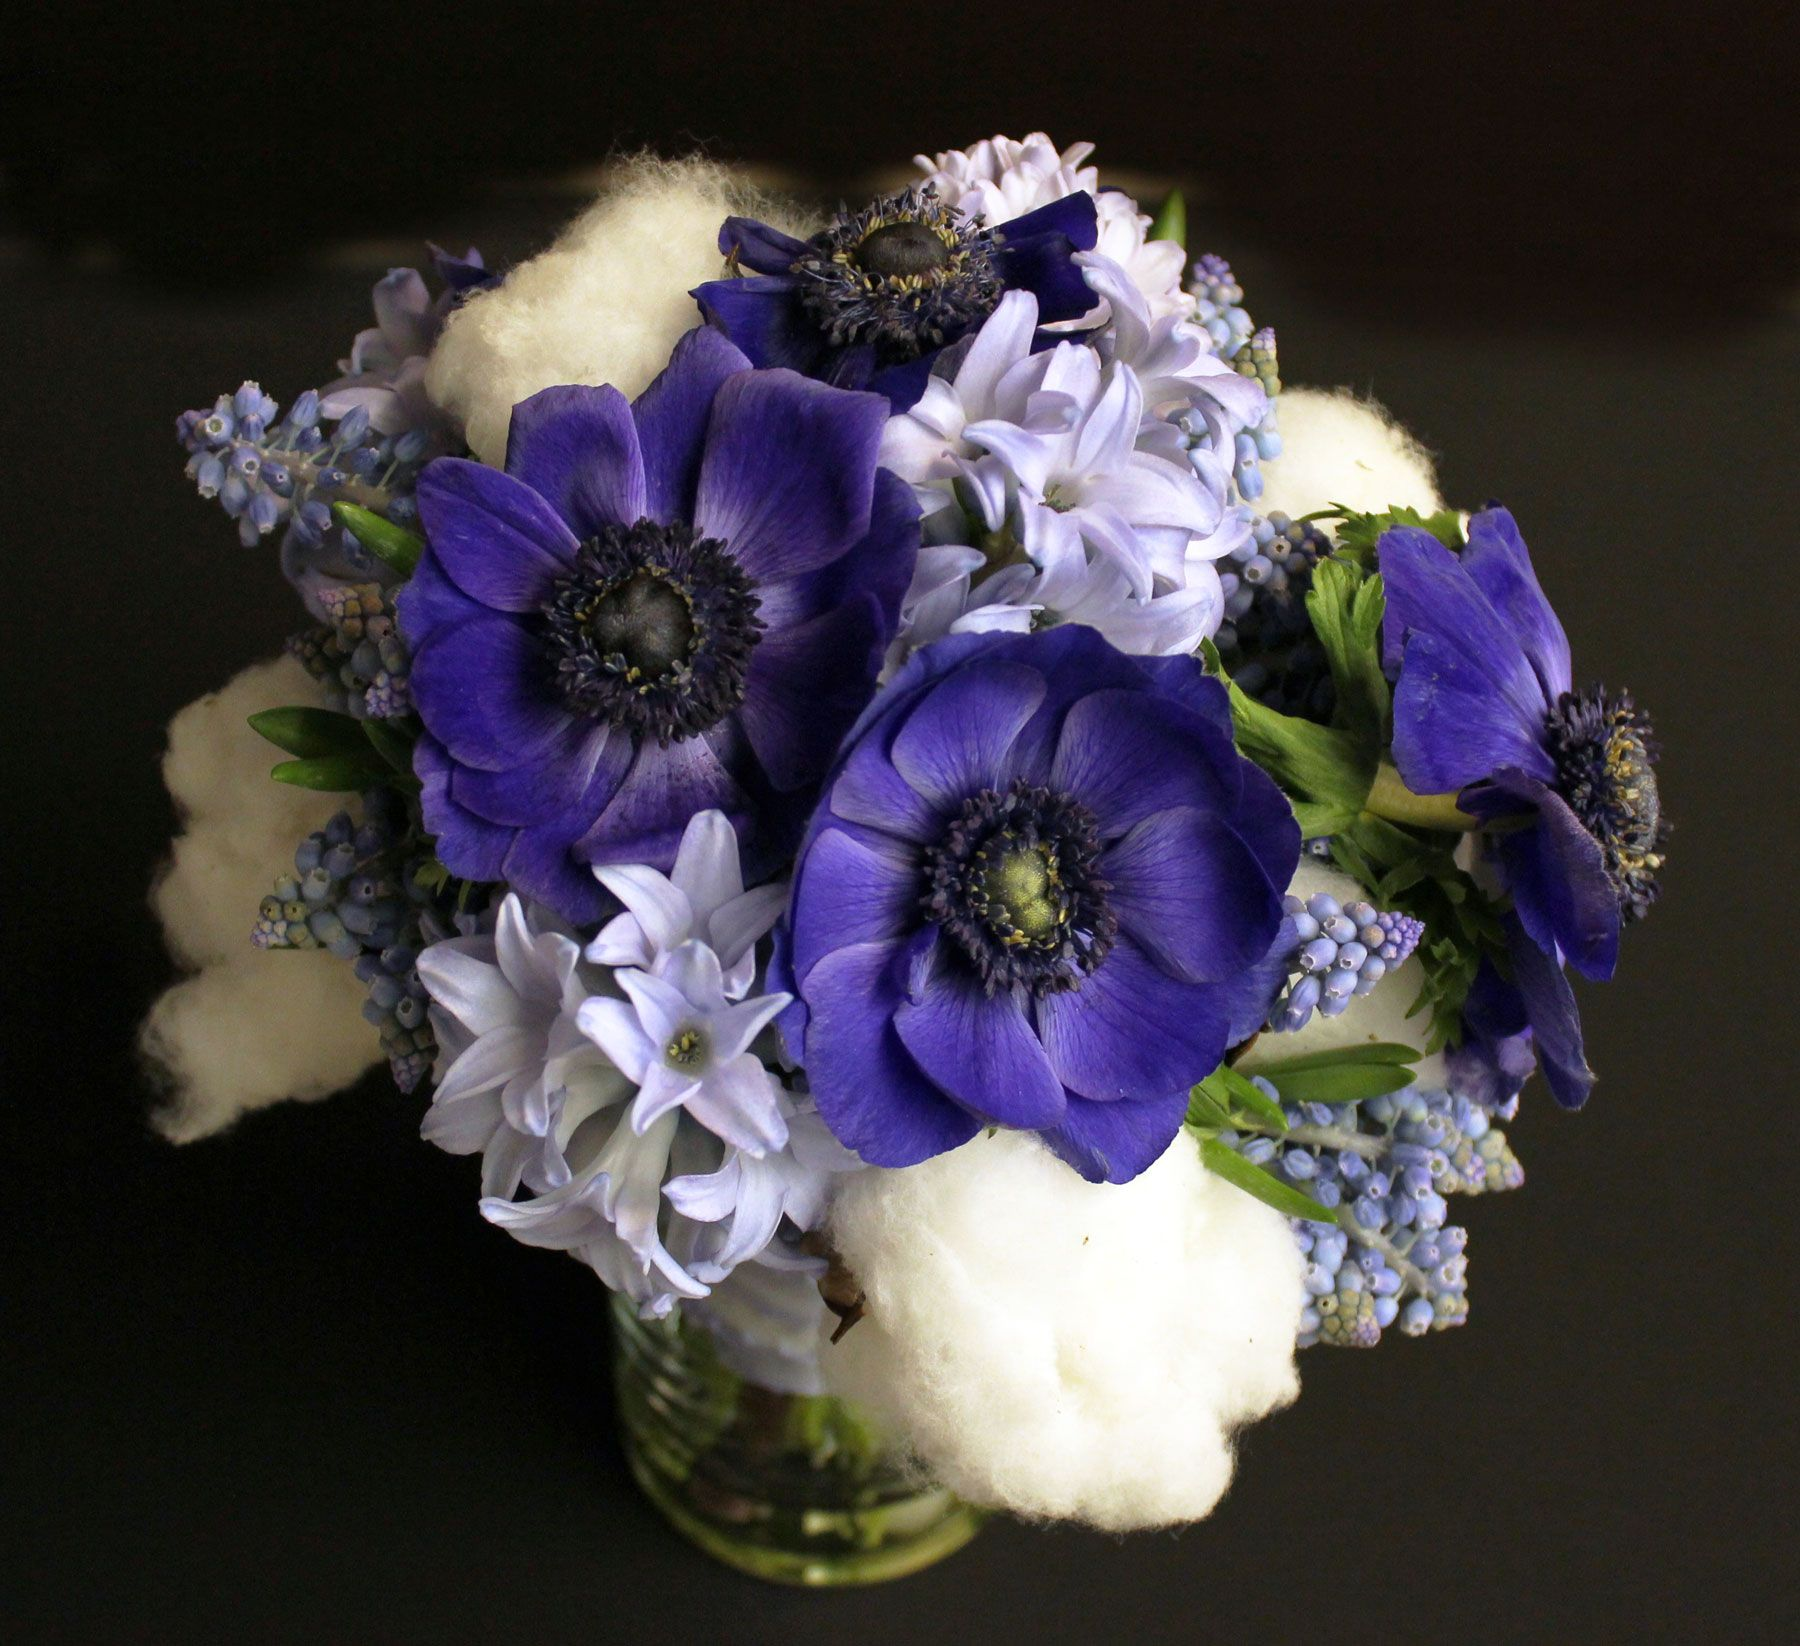 Blue Anemone Flower Bouquet | www.imgkid.com - The Image ...